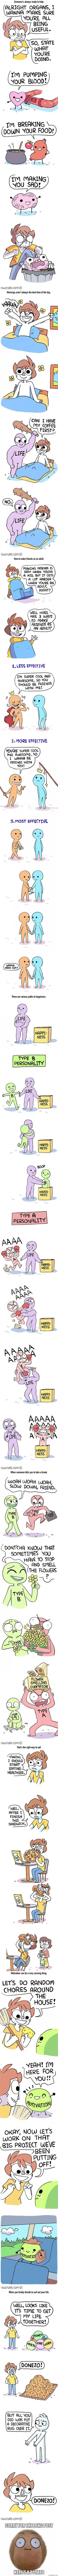 Brilliant Owlturd comic strips showing what adulthood is really like - 9GAG